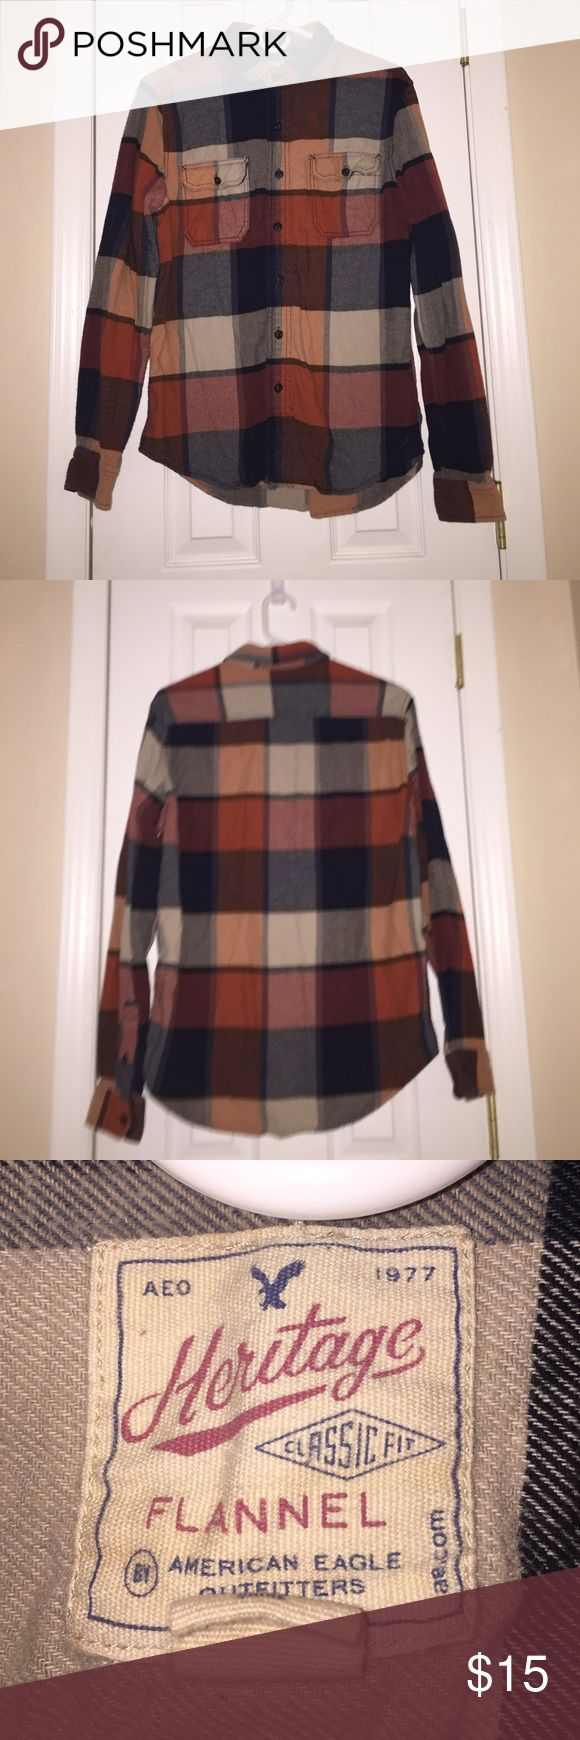 ✨American Eagle Outfitters Flannel/Button Up✨ ✨Been worn a few time. ✨Looks very vintage. ✨Nice quality. ✨Deals are negotiable. American Eagle Outfitters Shirts Casual Button Down Shirts